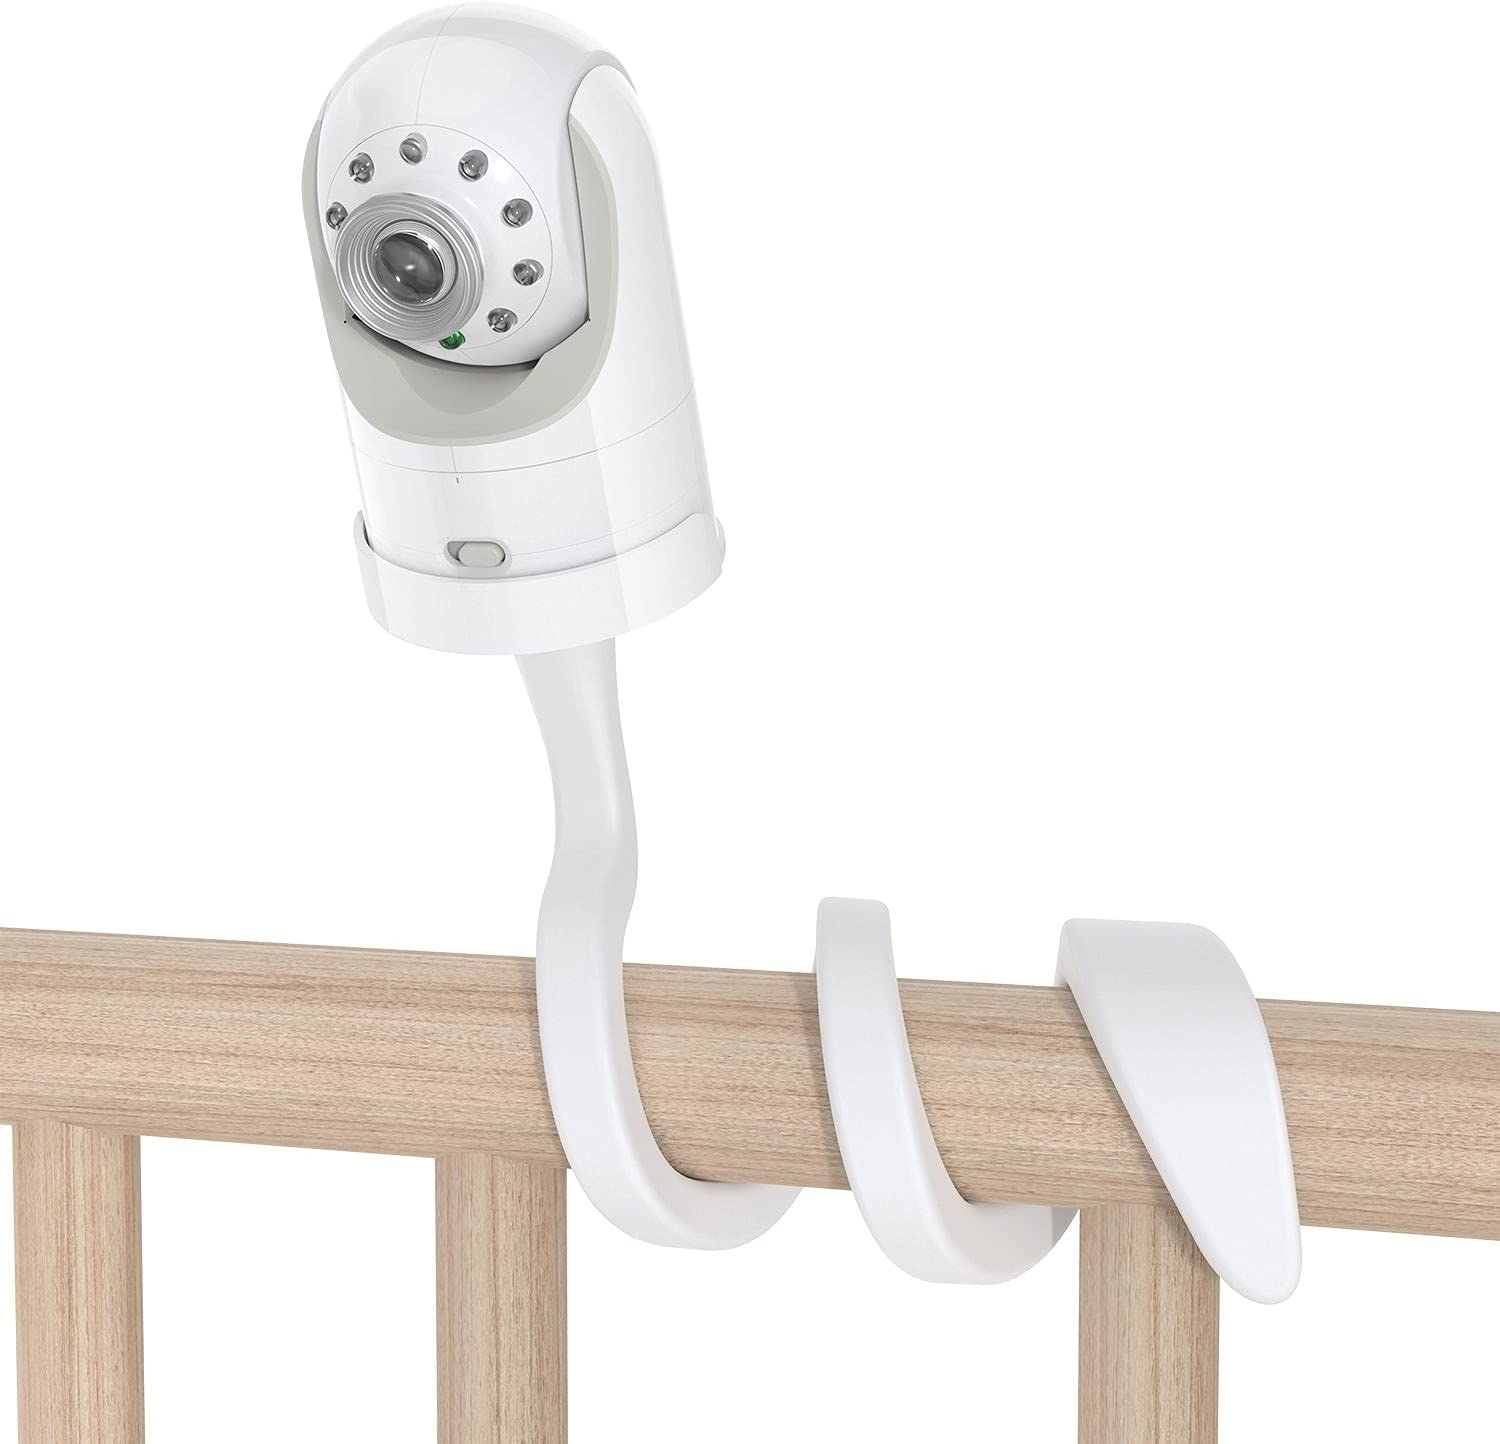 Adjustable Crib Mount Camera Shelf, Infant Baby Camera Holder Compatible with Infant Optics DXR-8 and DXR-8 Pro Baby Monitor, Security and Sturdy, Easy to Install, White